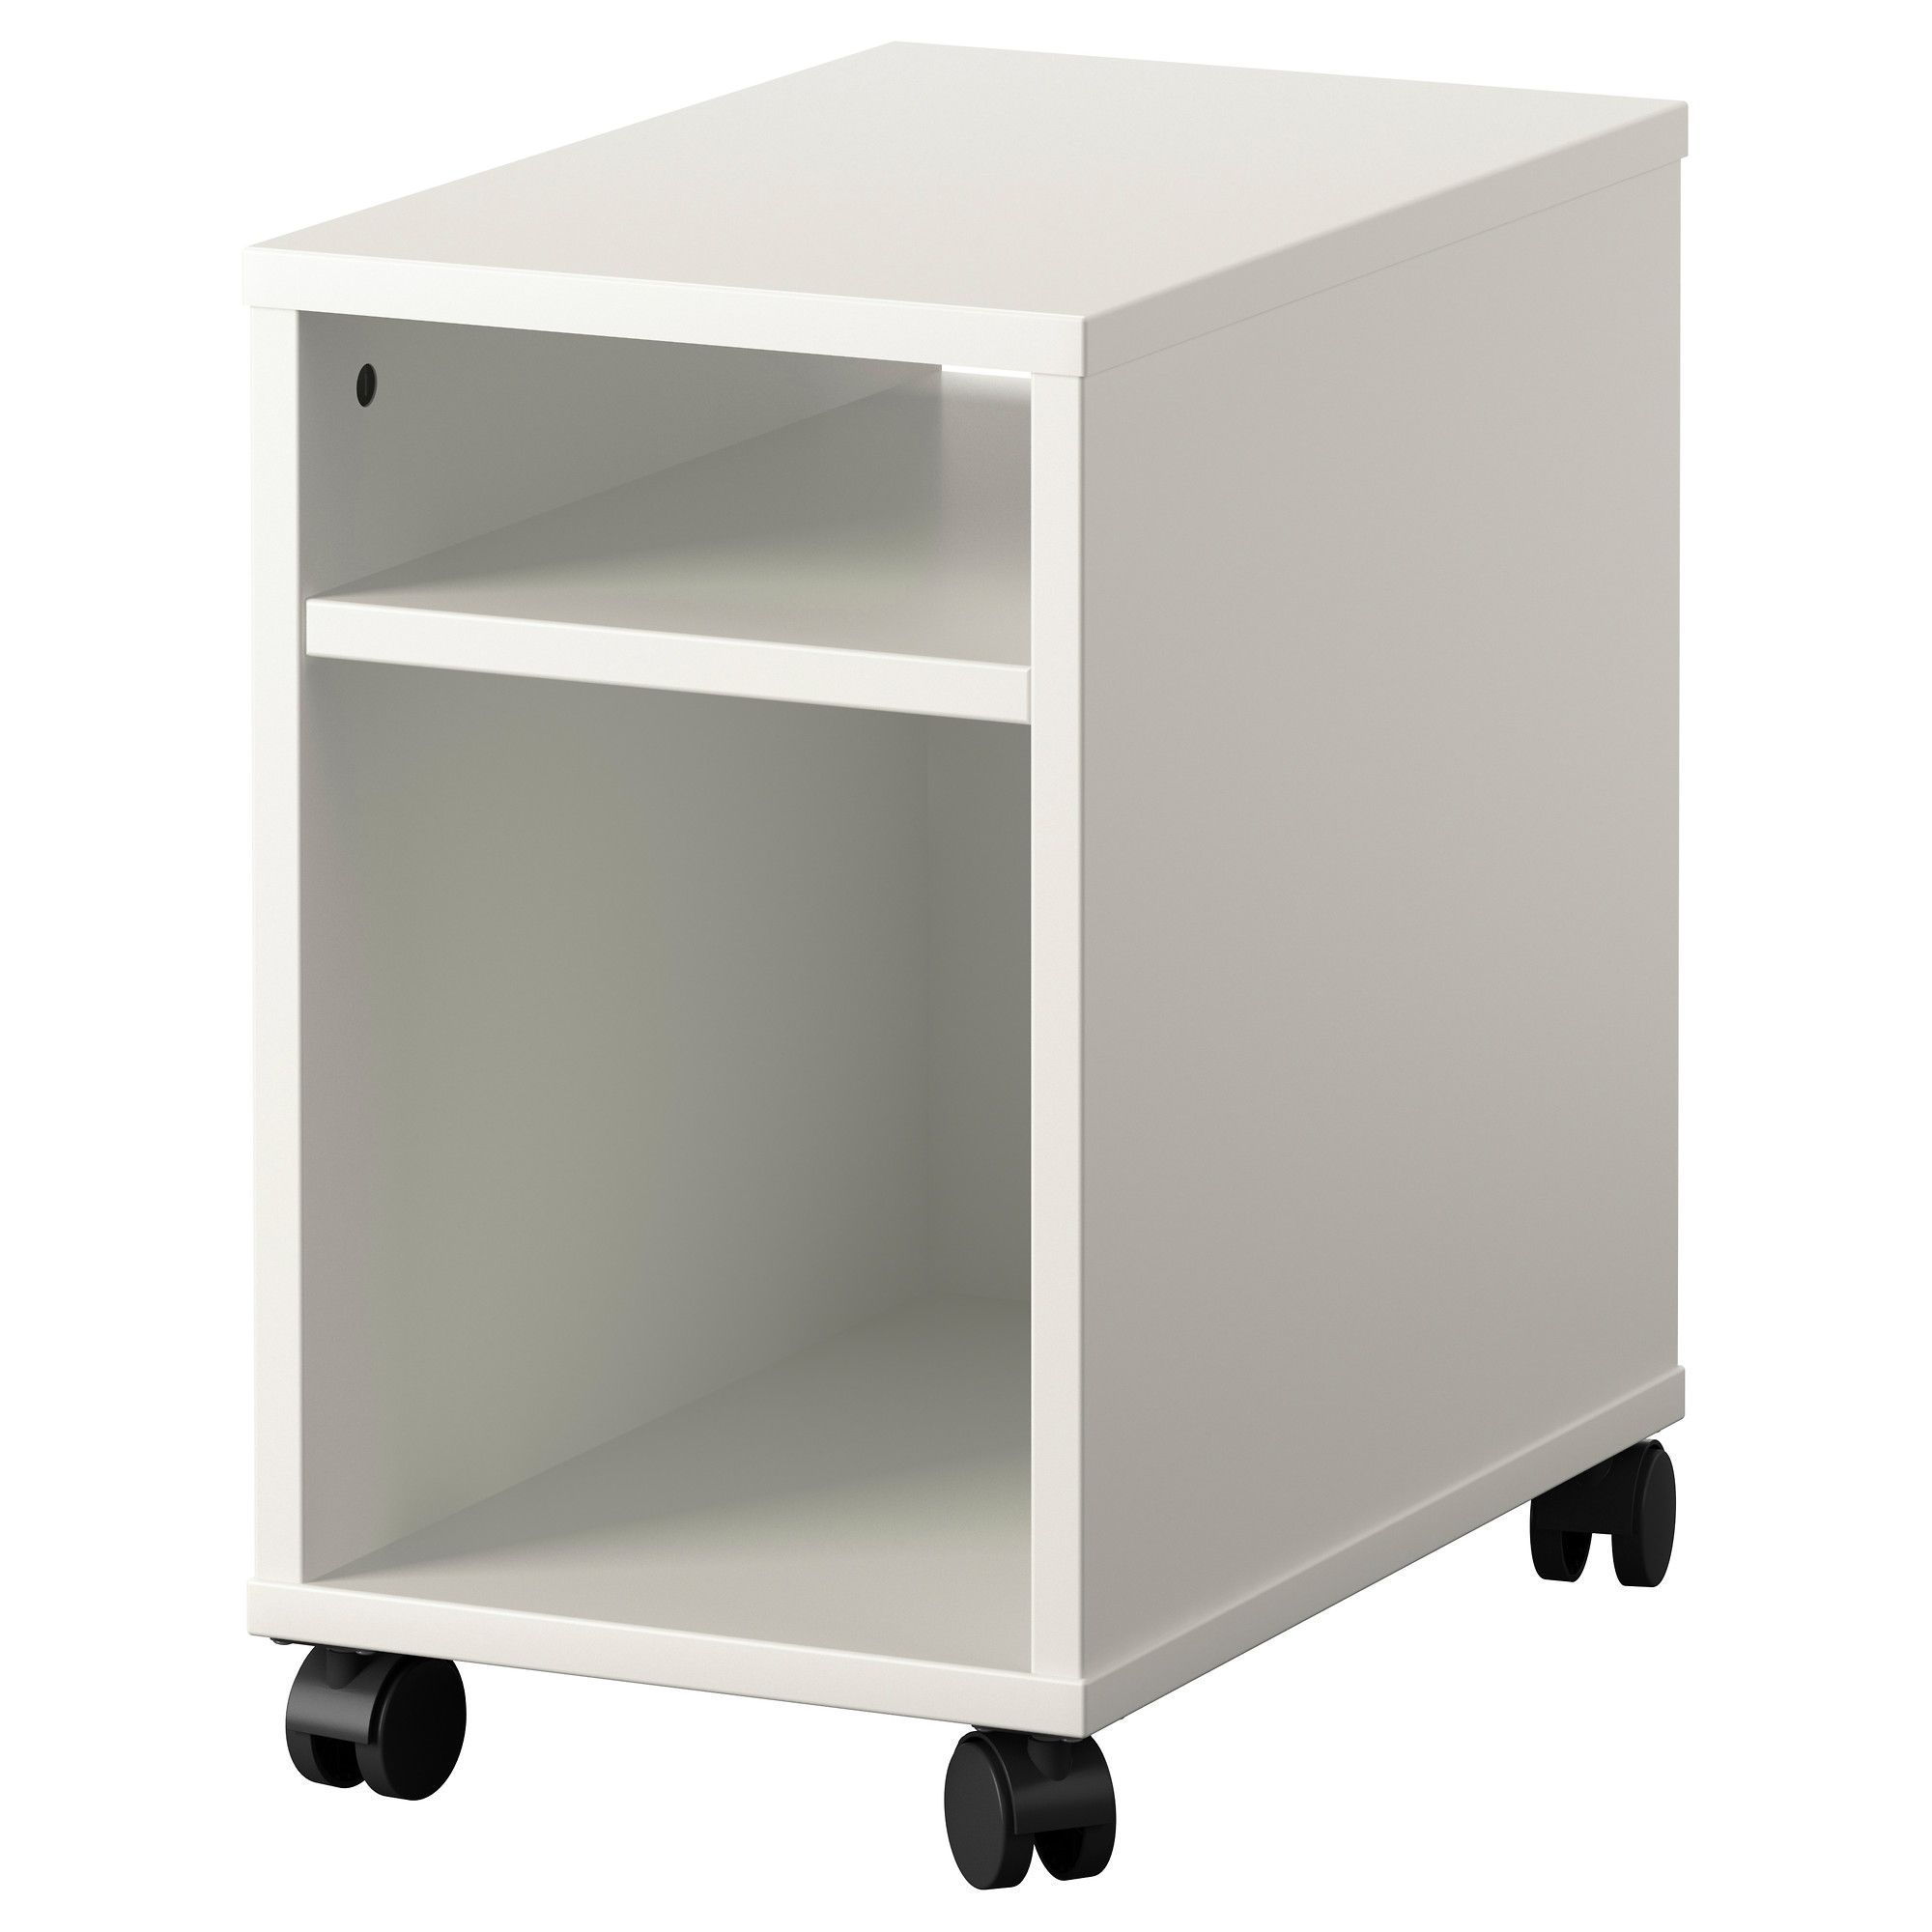 Grabbing The Best Bed Tables Lovely Ikea Bed Table On Wheels Portable Bed Table Ikea Bed Table Table Laptop Table